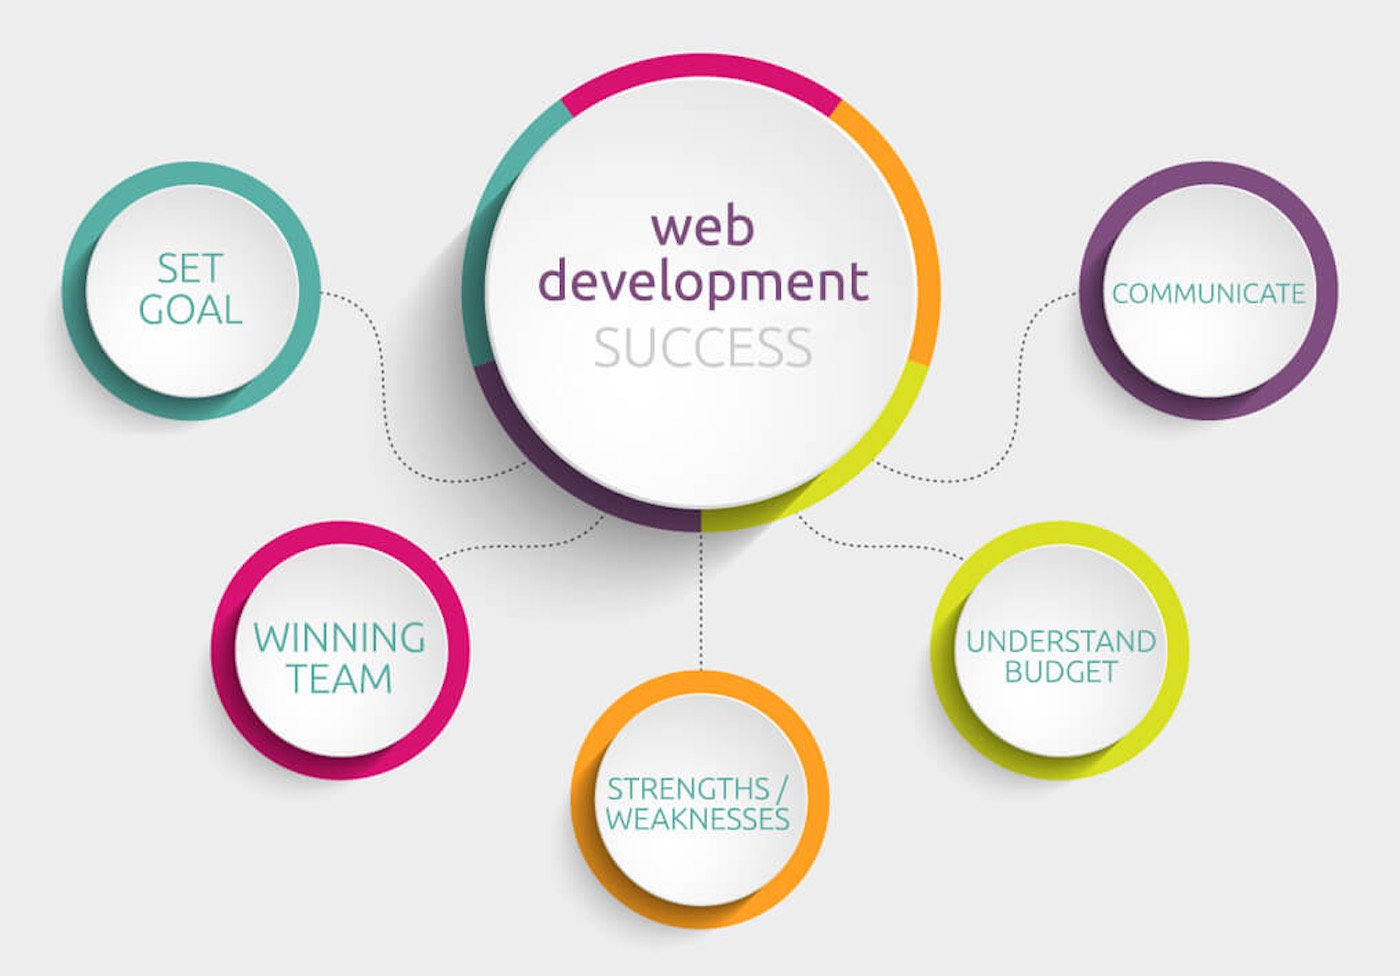 How to Choose a Web Development Strategy For Your Business